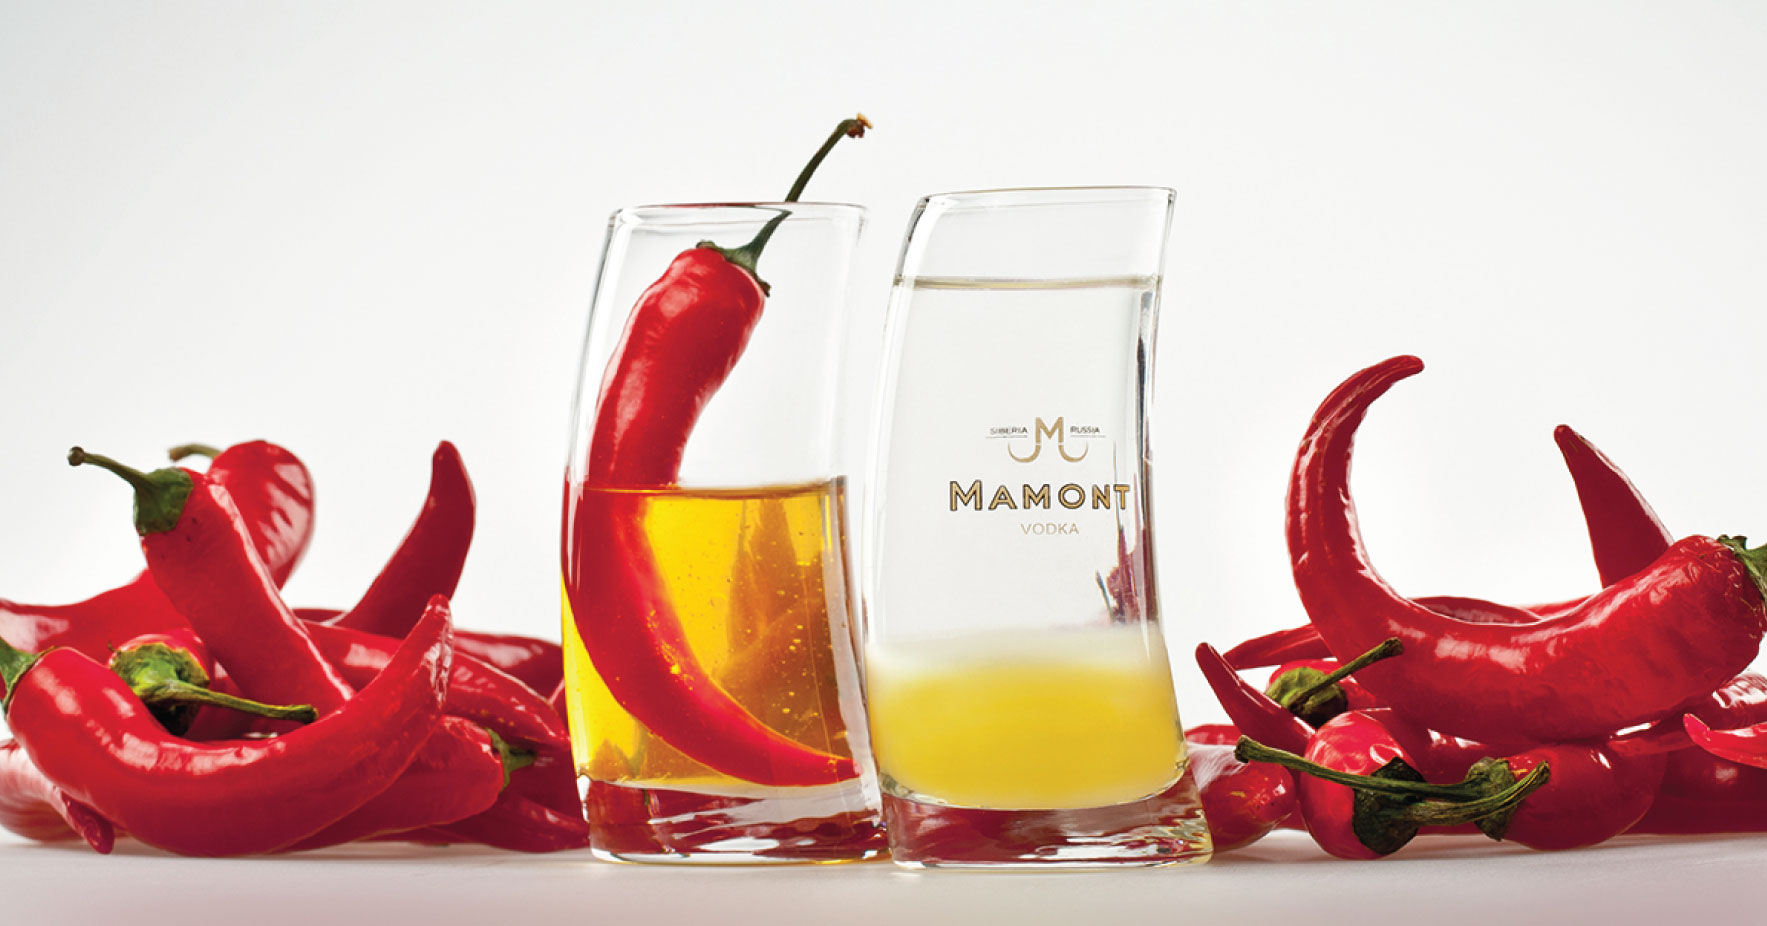 Choose adventure with Mamont Vodka shots #ChooseAdventure